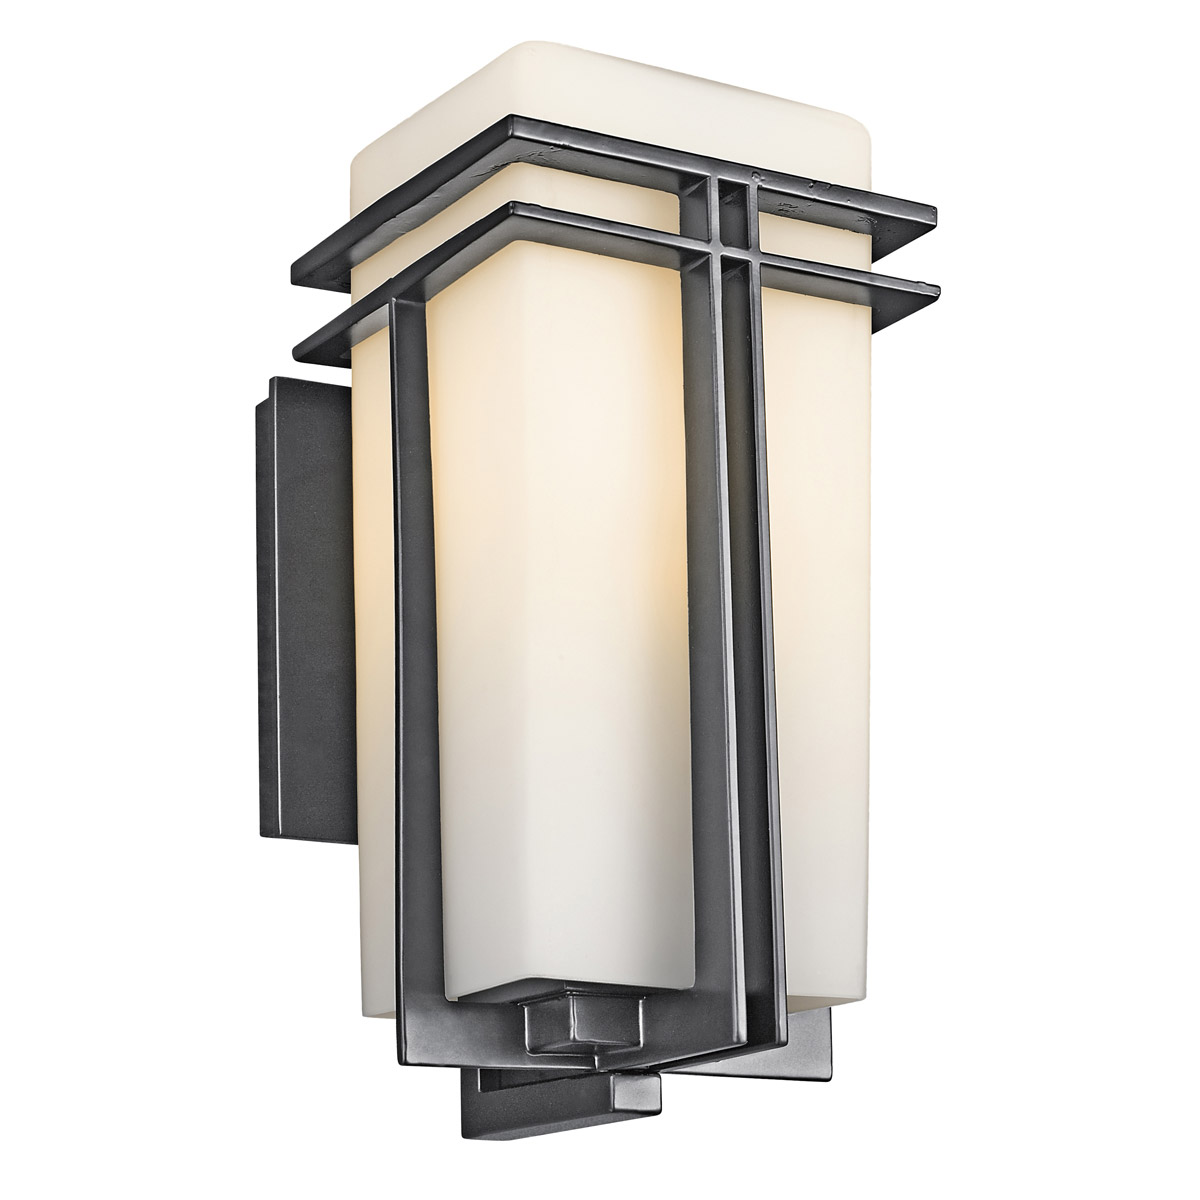 Kichler 49201bk Tremillo Outdoor Wall Fixture